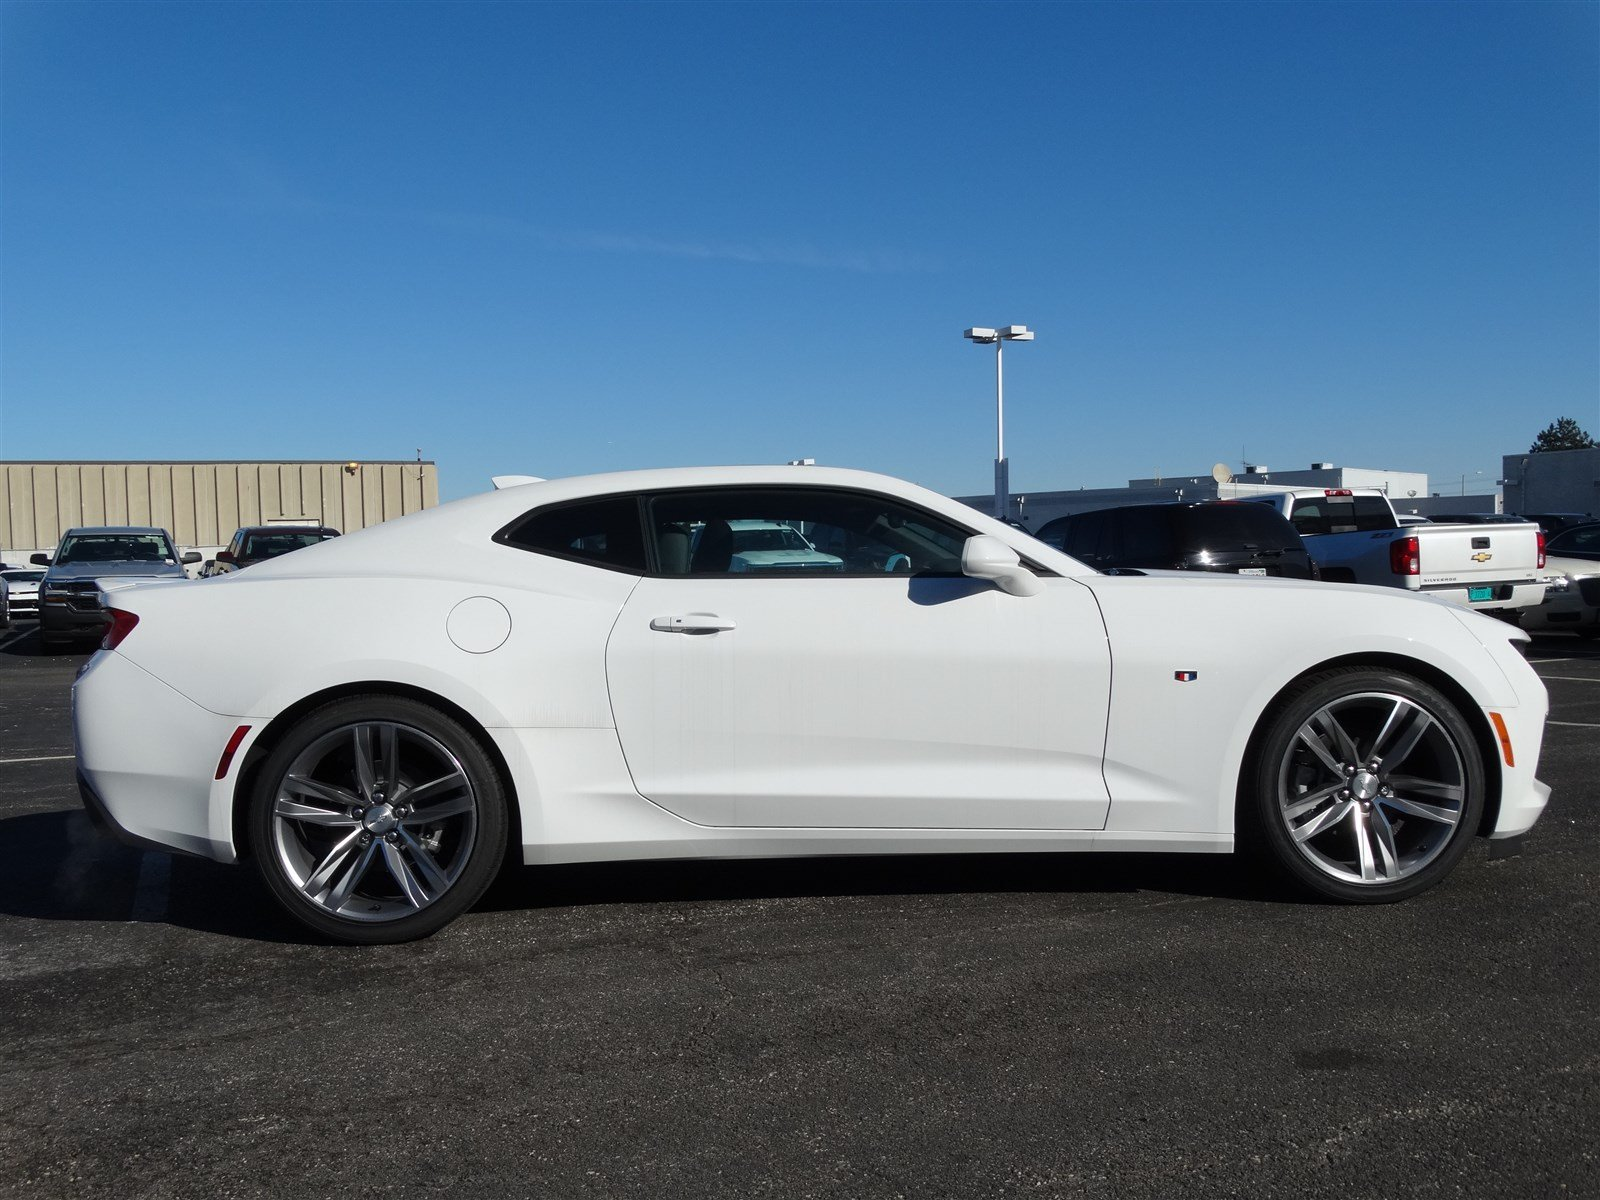 Watch furthermore Watch besides Watch besides New 2017 Chevrolet Camaro 2lt Coupe Rs Package Navigation Sunroof Leather 1g1fd1rsxh0136908 additionally 172039295650. on tahoe navigation radio